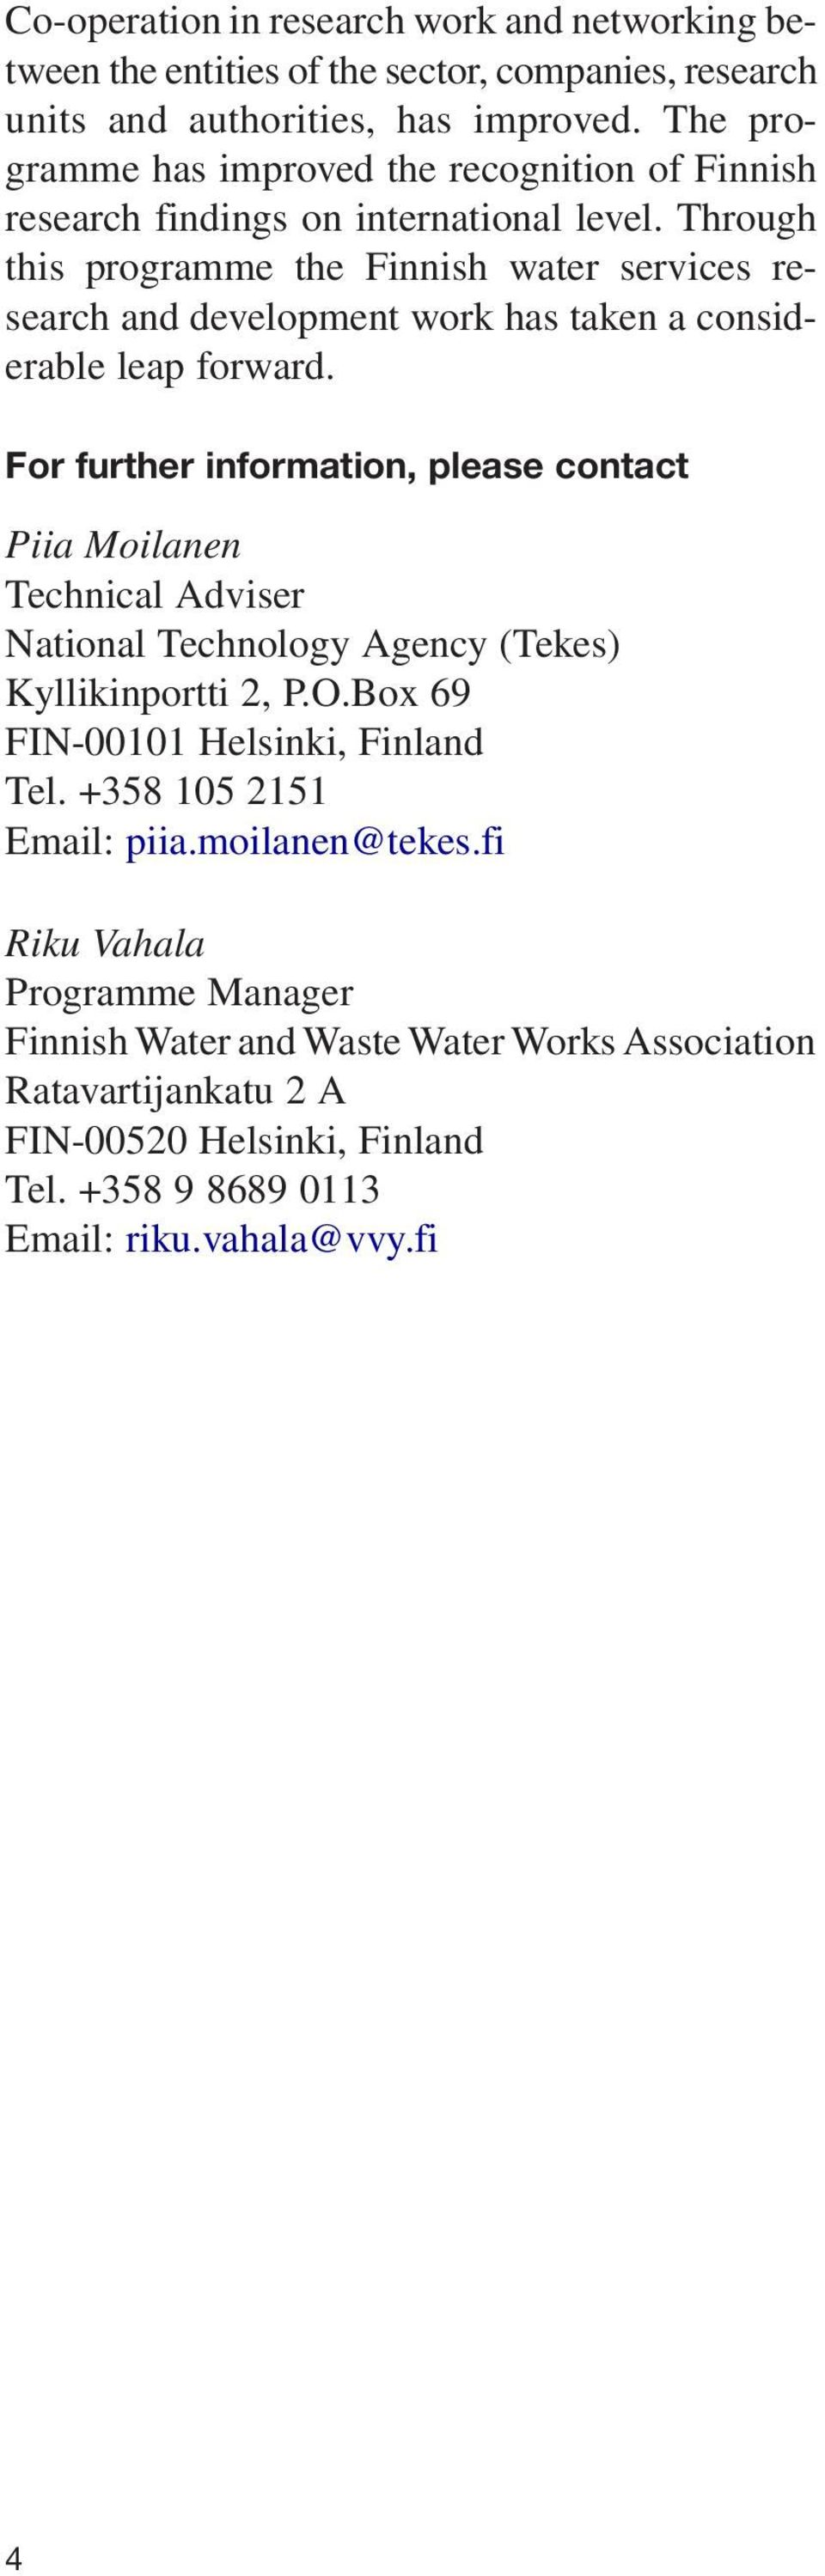 Through this programme the Finnish water services research and development work has taken a considerable leap forward.